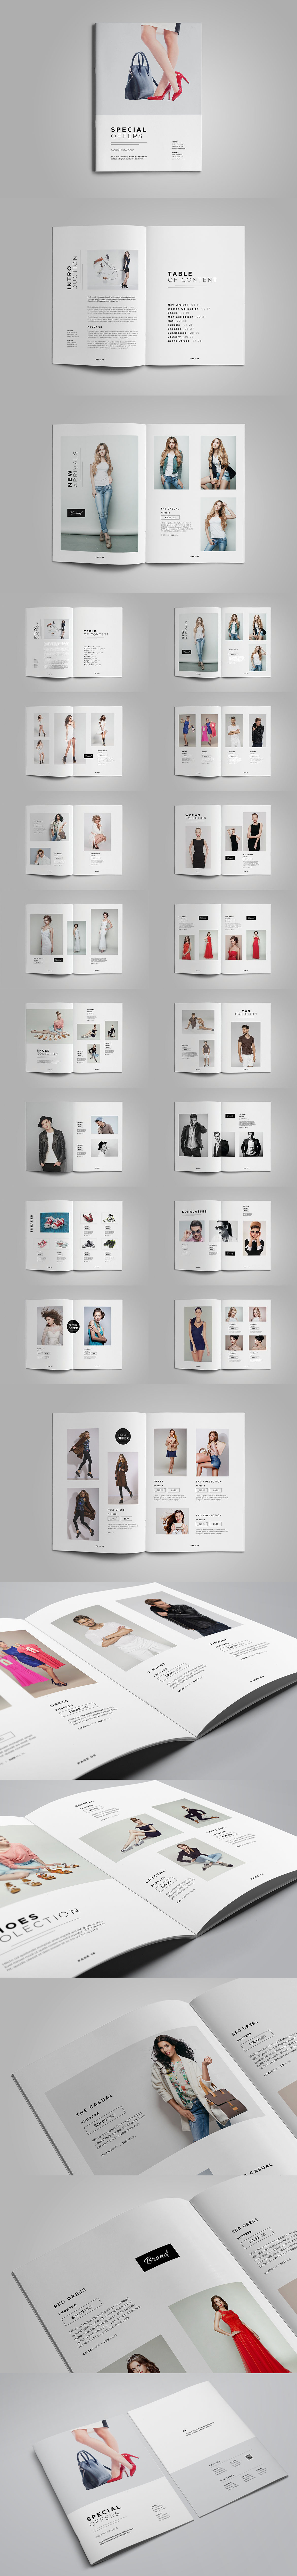 Product Catalog Template InDesign INDD - 36 Unique Pages, A4 ...